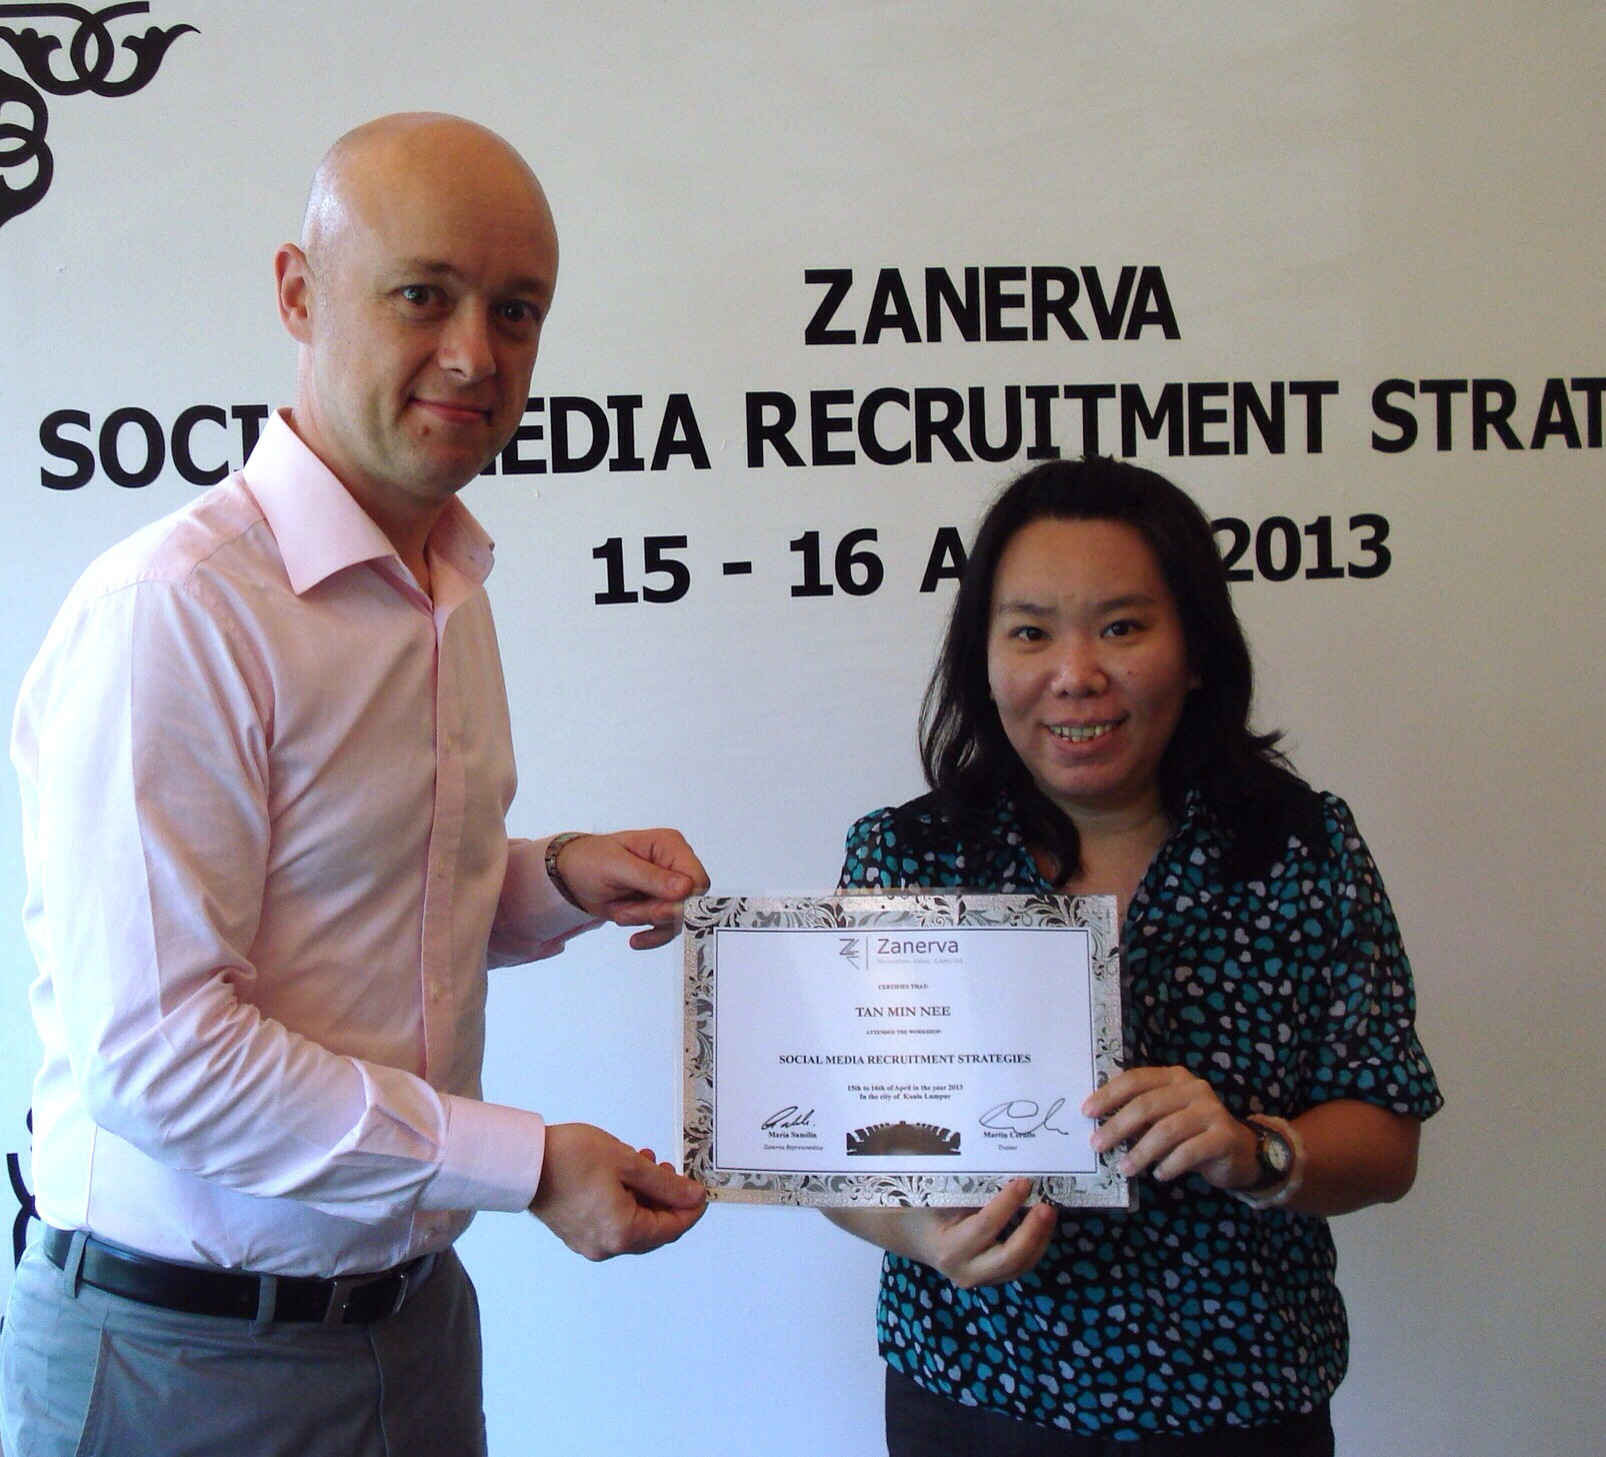 Tan Min Nee, Senior HR Generalist at Radisys (M) Sdn Bhd  receiving her certificate of participation for attending the Social Media Recruitment Strategies Workshop in Kuala Lumpur